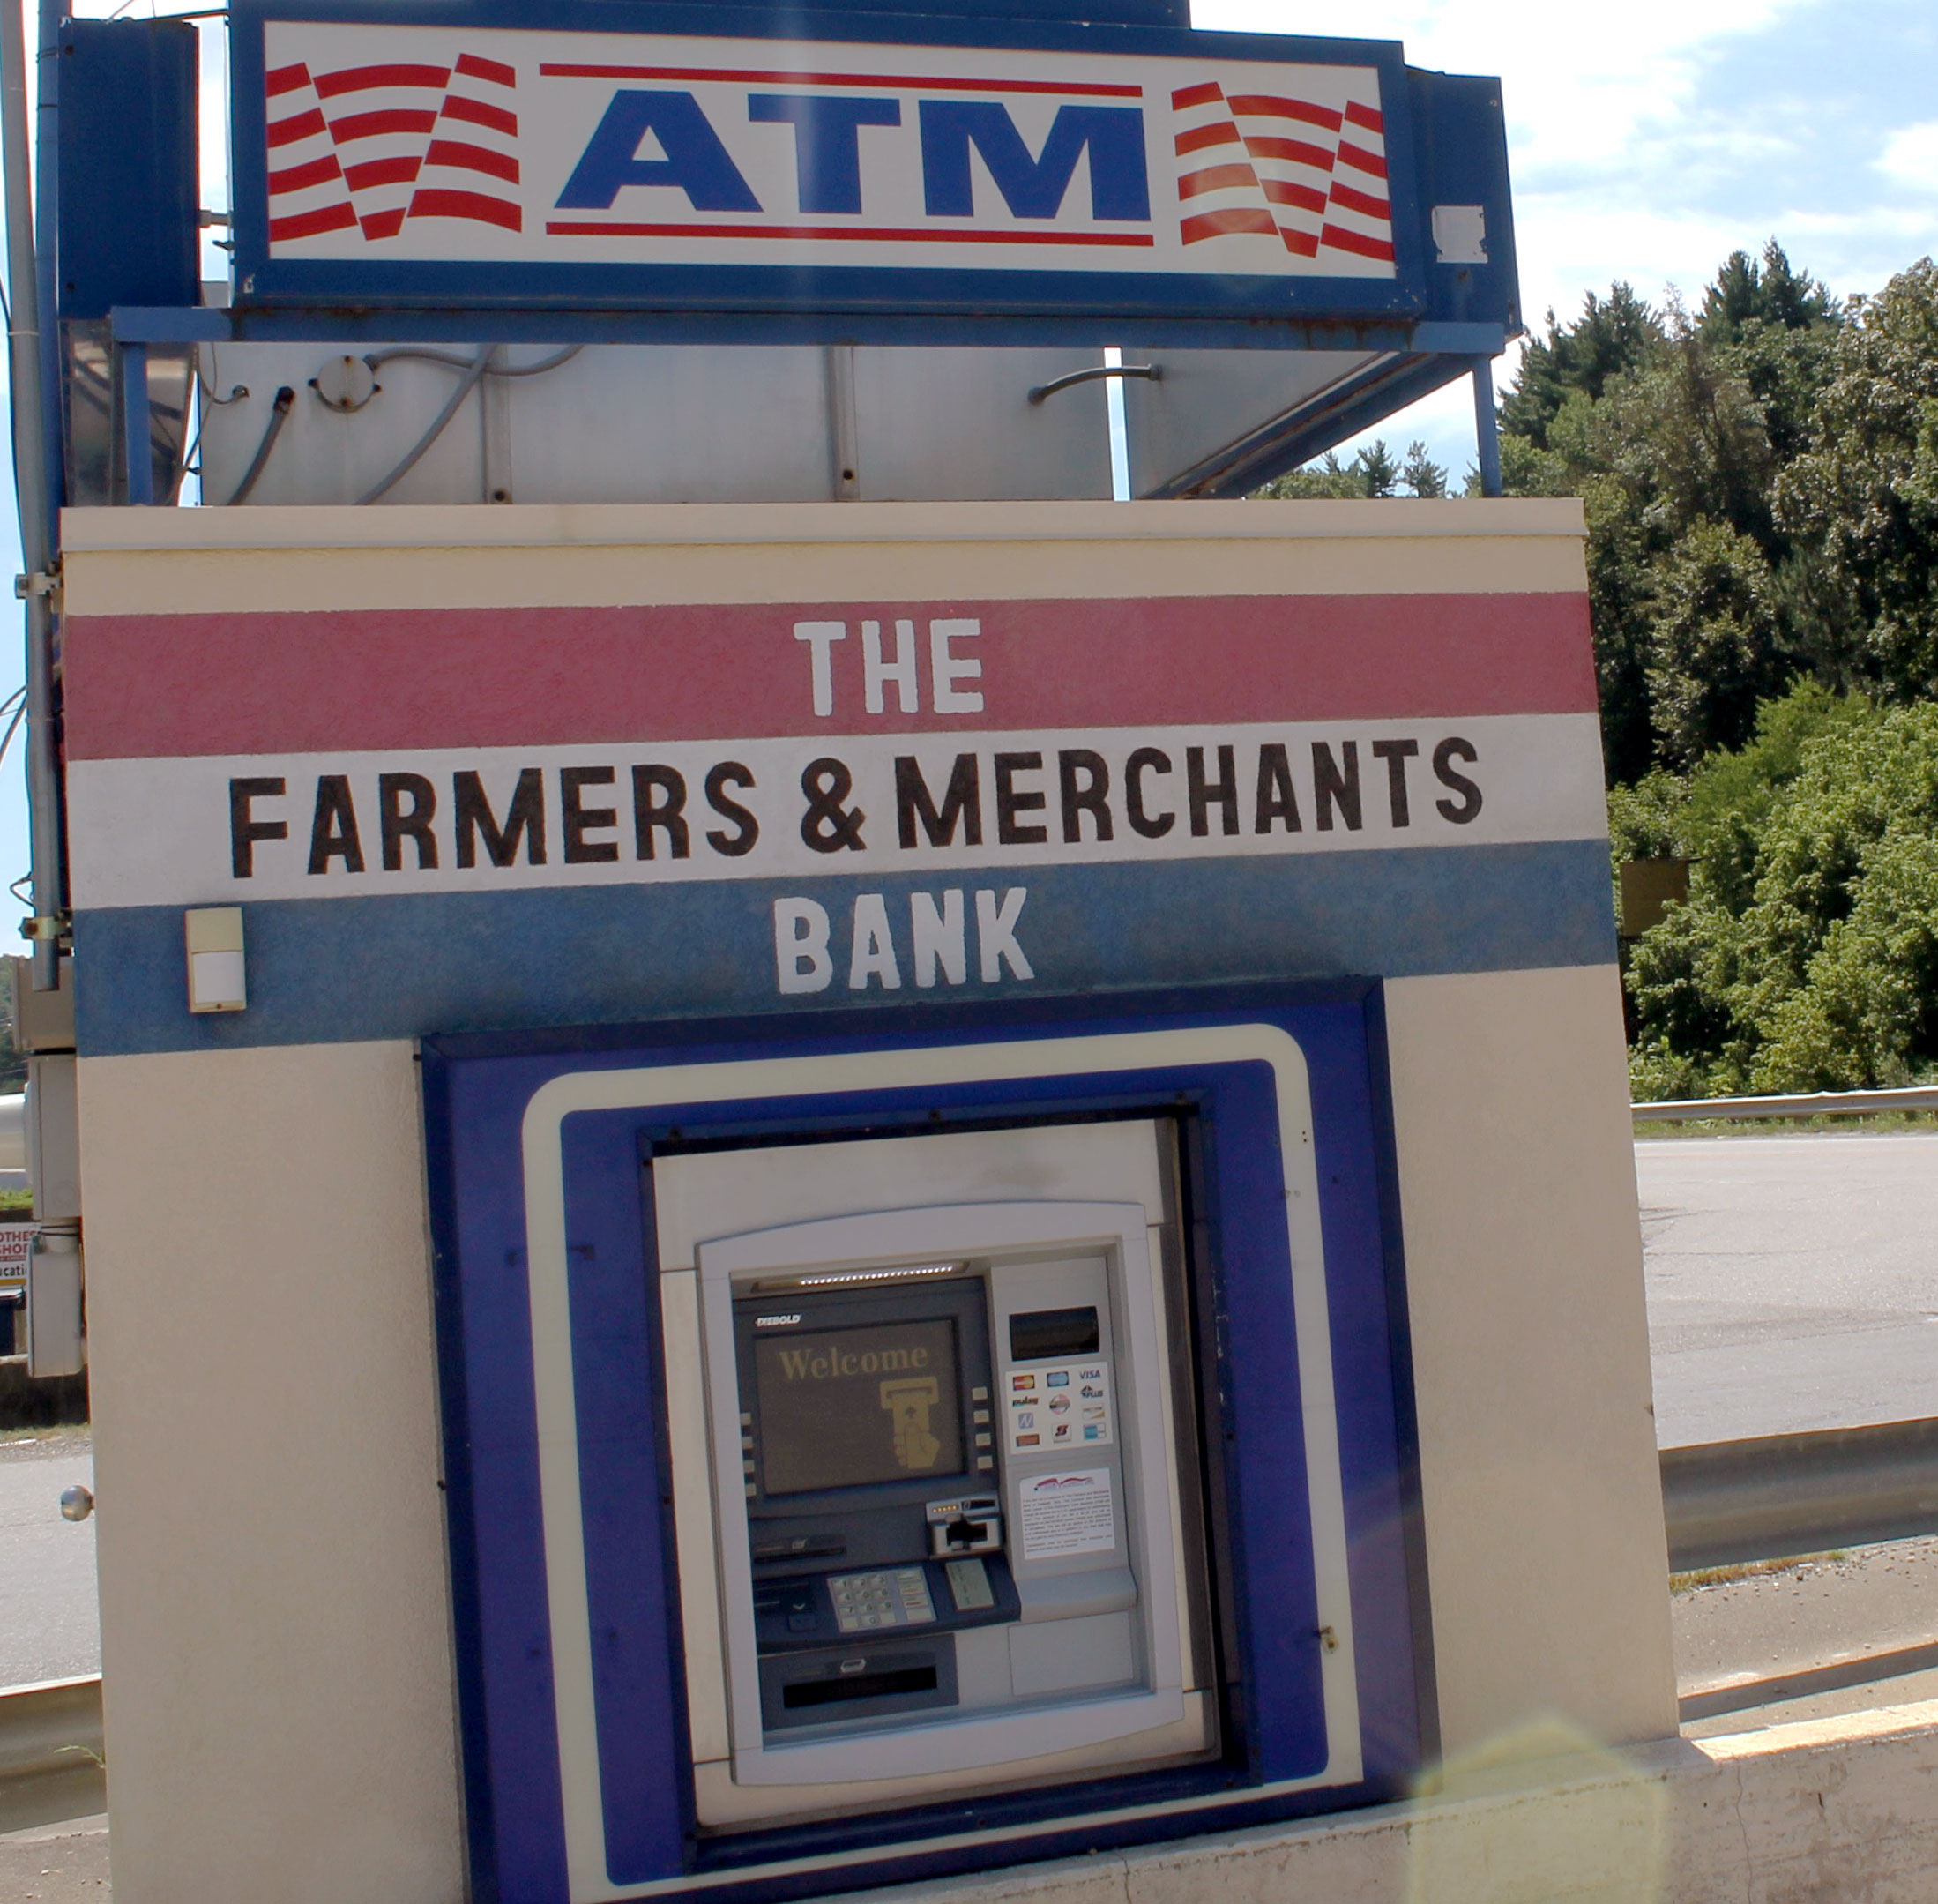 The Farmers and Merchants Bank ATM